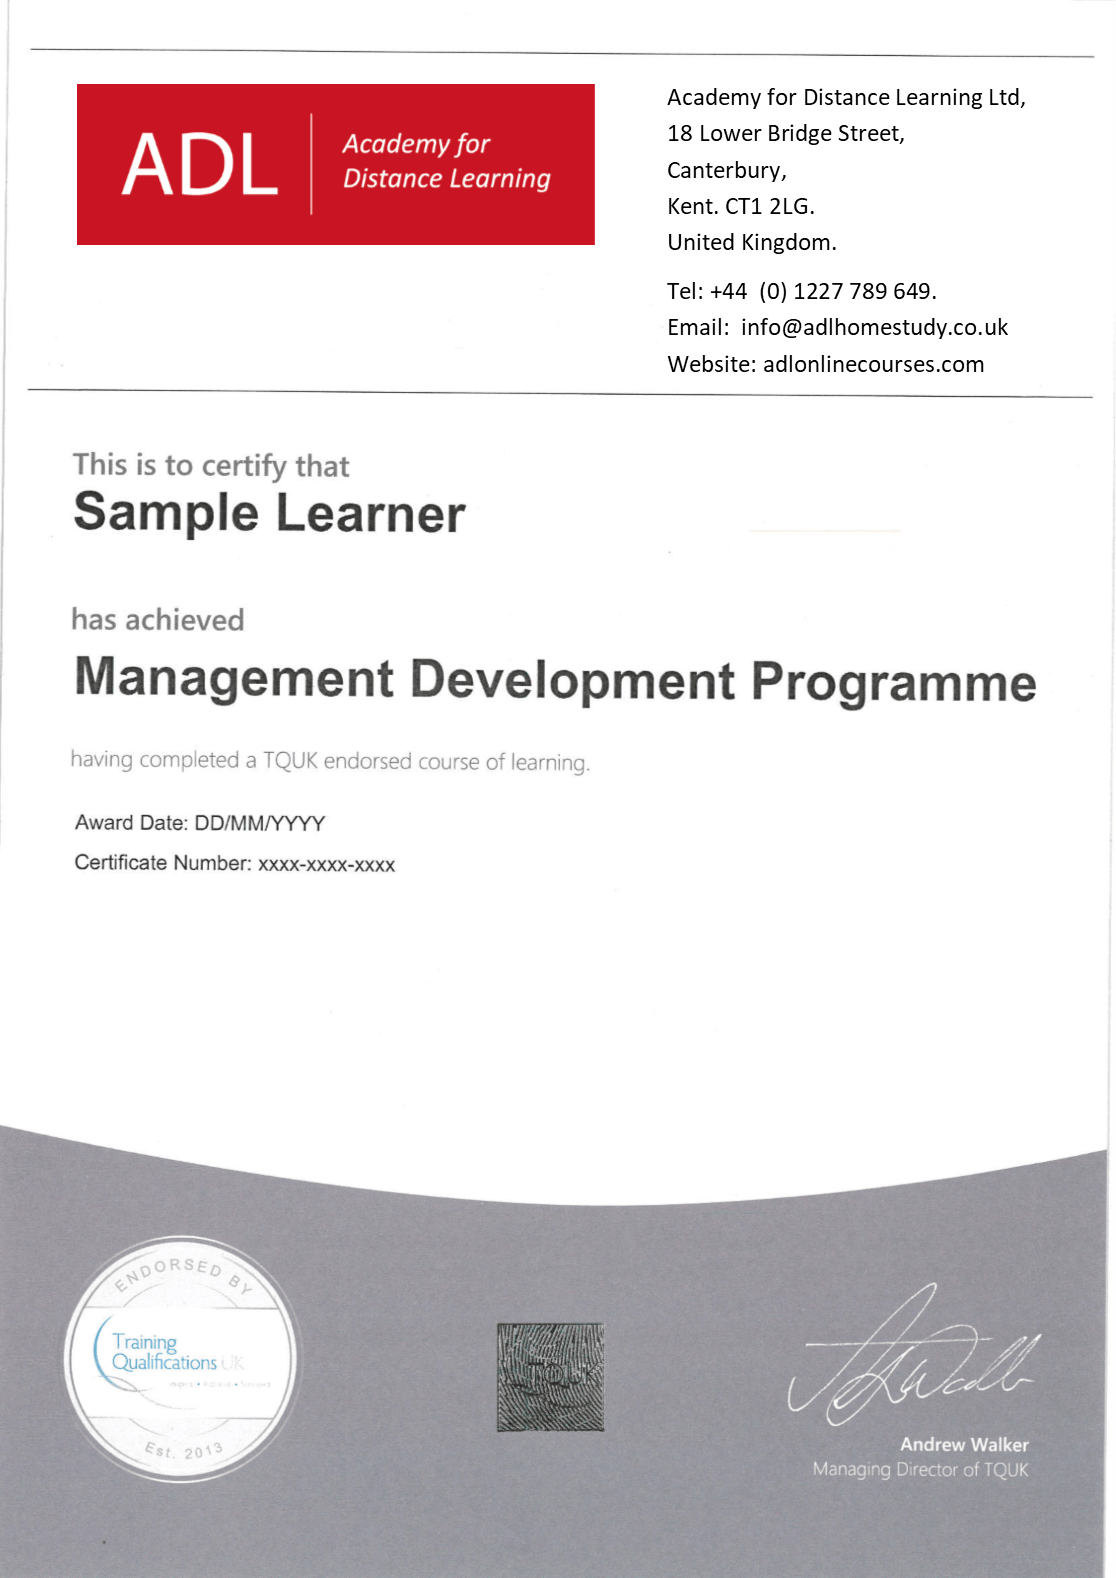 Sample TQUK certificate issued on completion of assignments and final exam